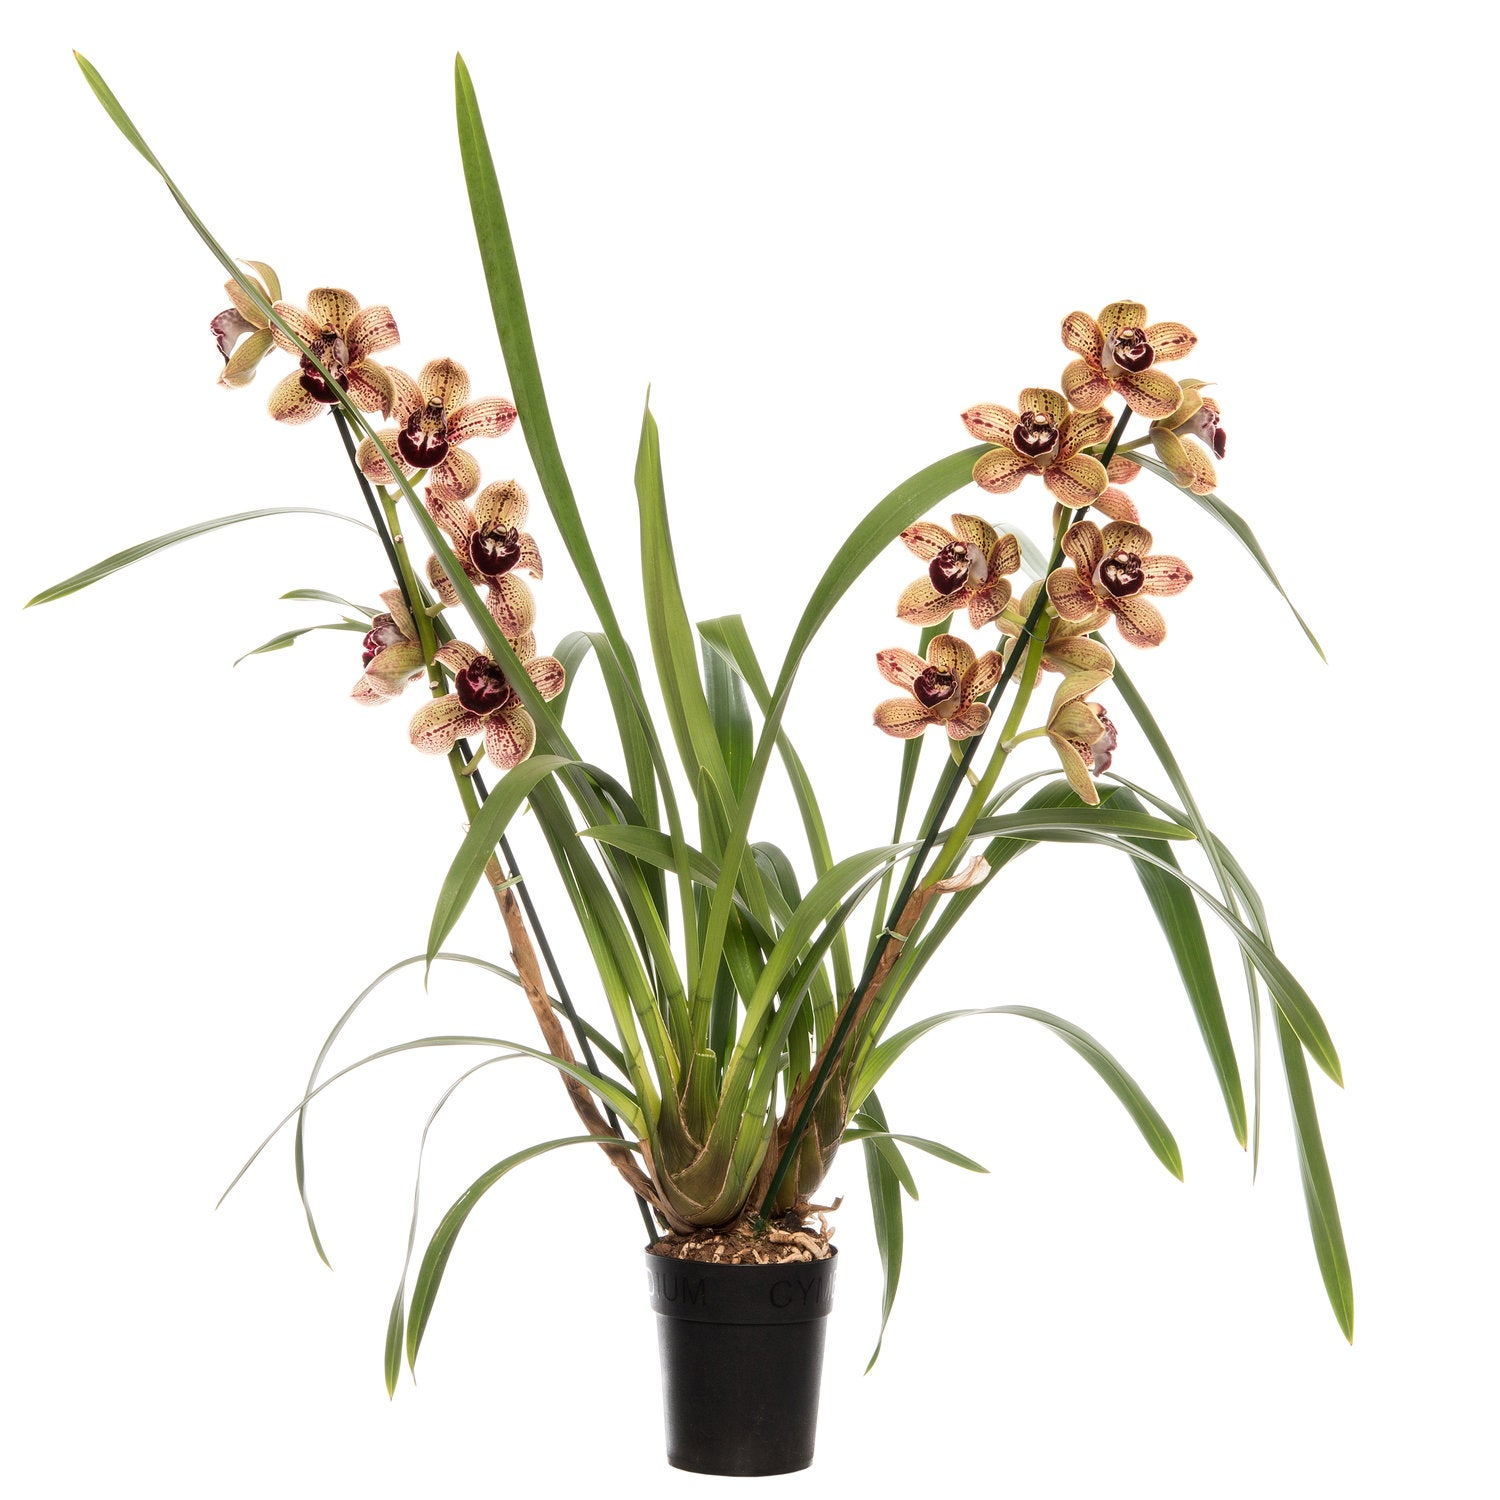 Cymbidium (Cymbidium 'Los Angeles') D 14 H 80 cm